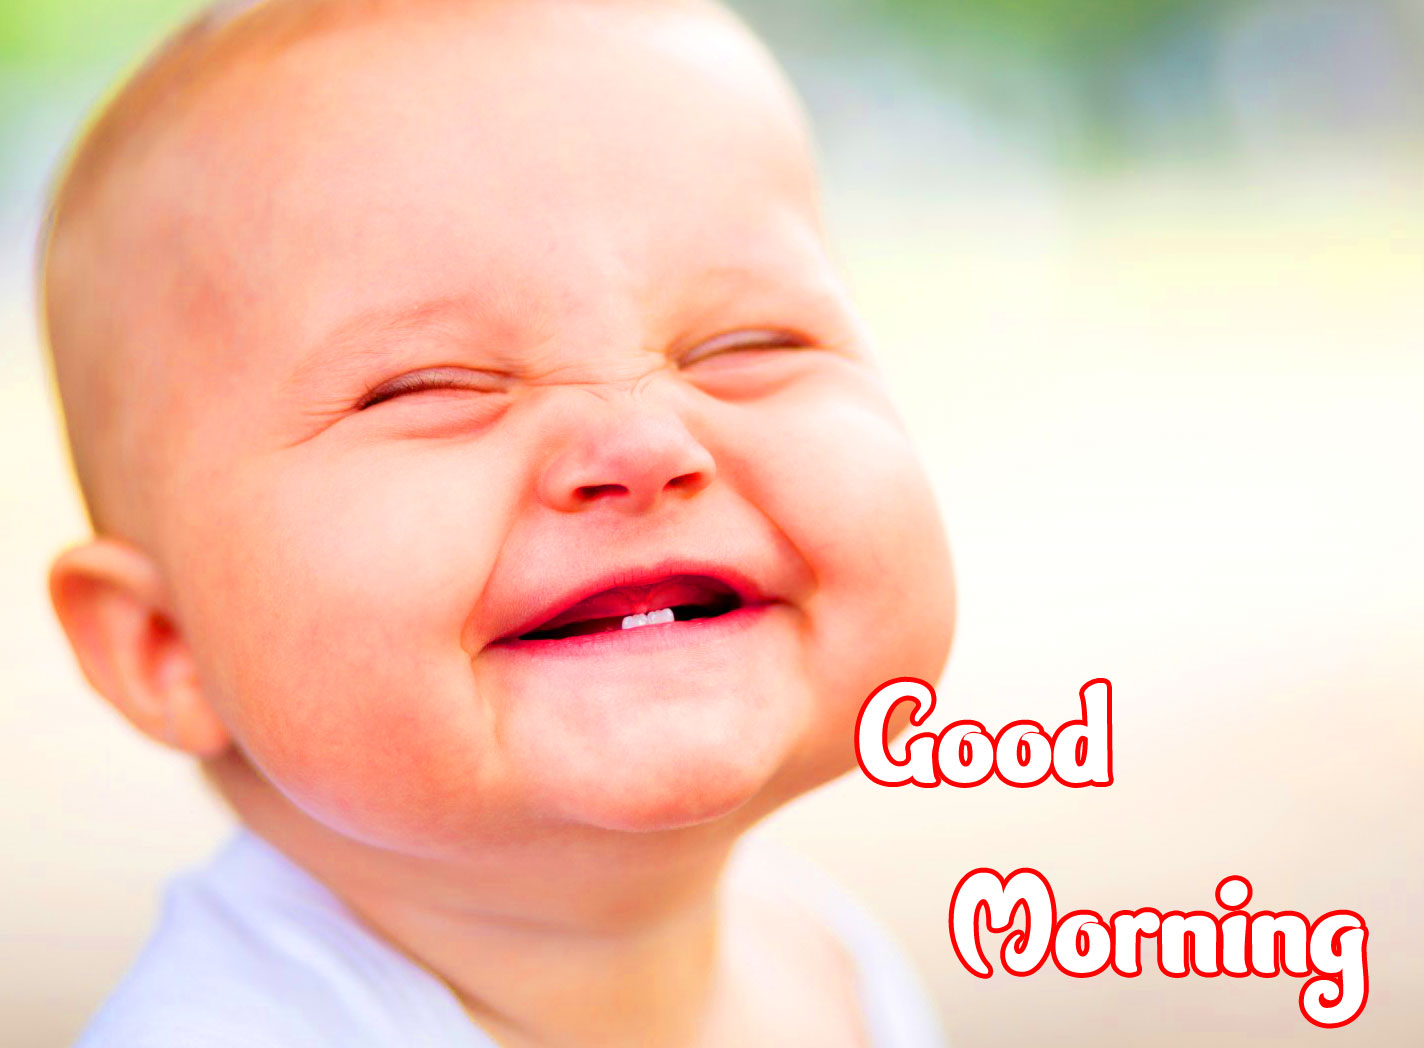 Funny Good Morning Wishes Images Download 37